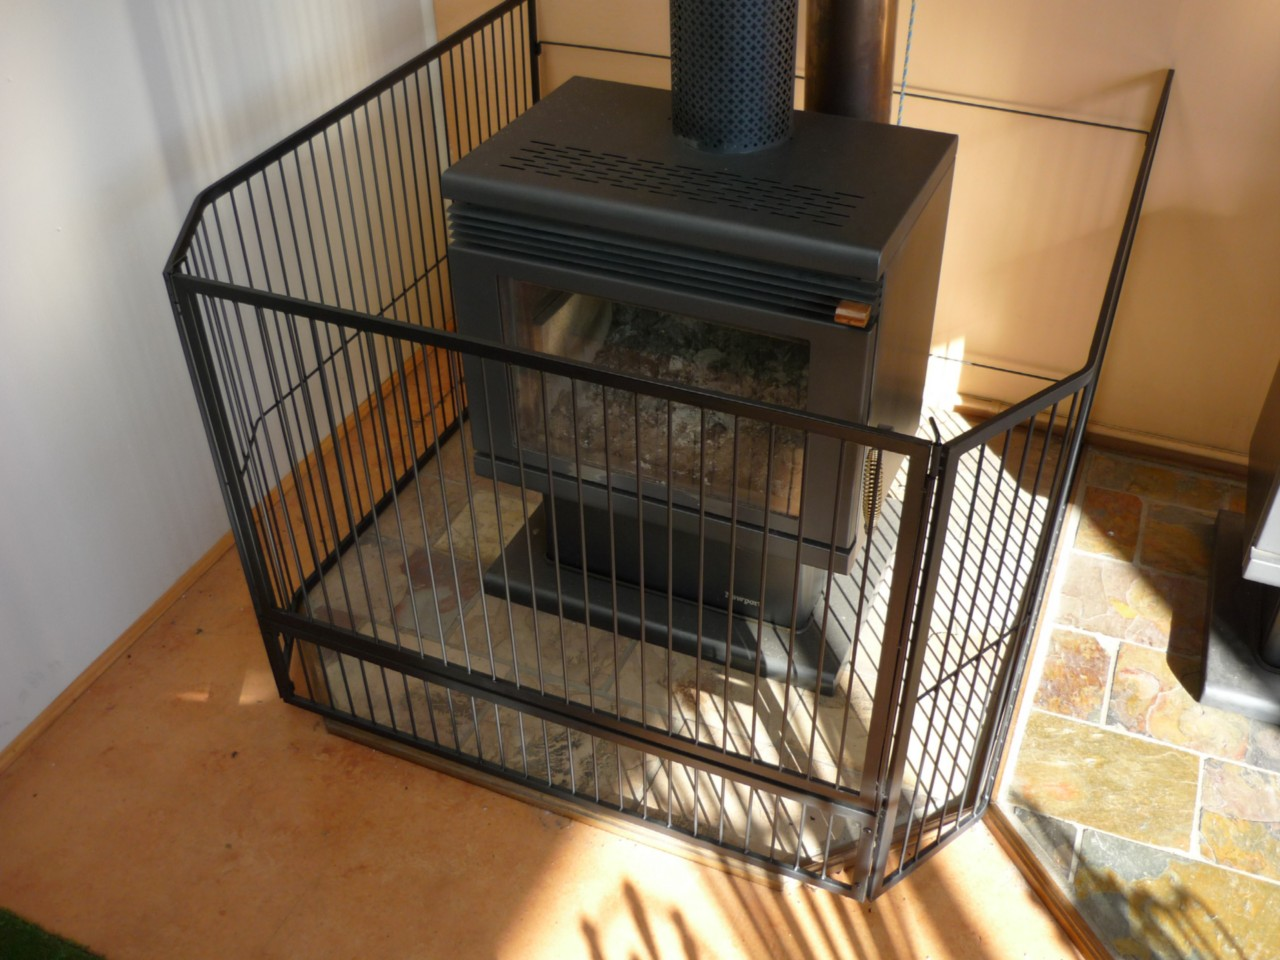 Similiar Baby Gates Around Wood Stove Keywords - Fireplace Safety Guard - Fireplace Ideas